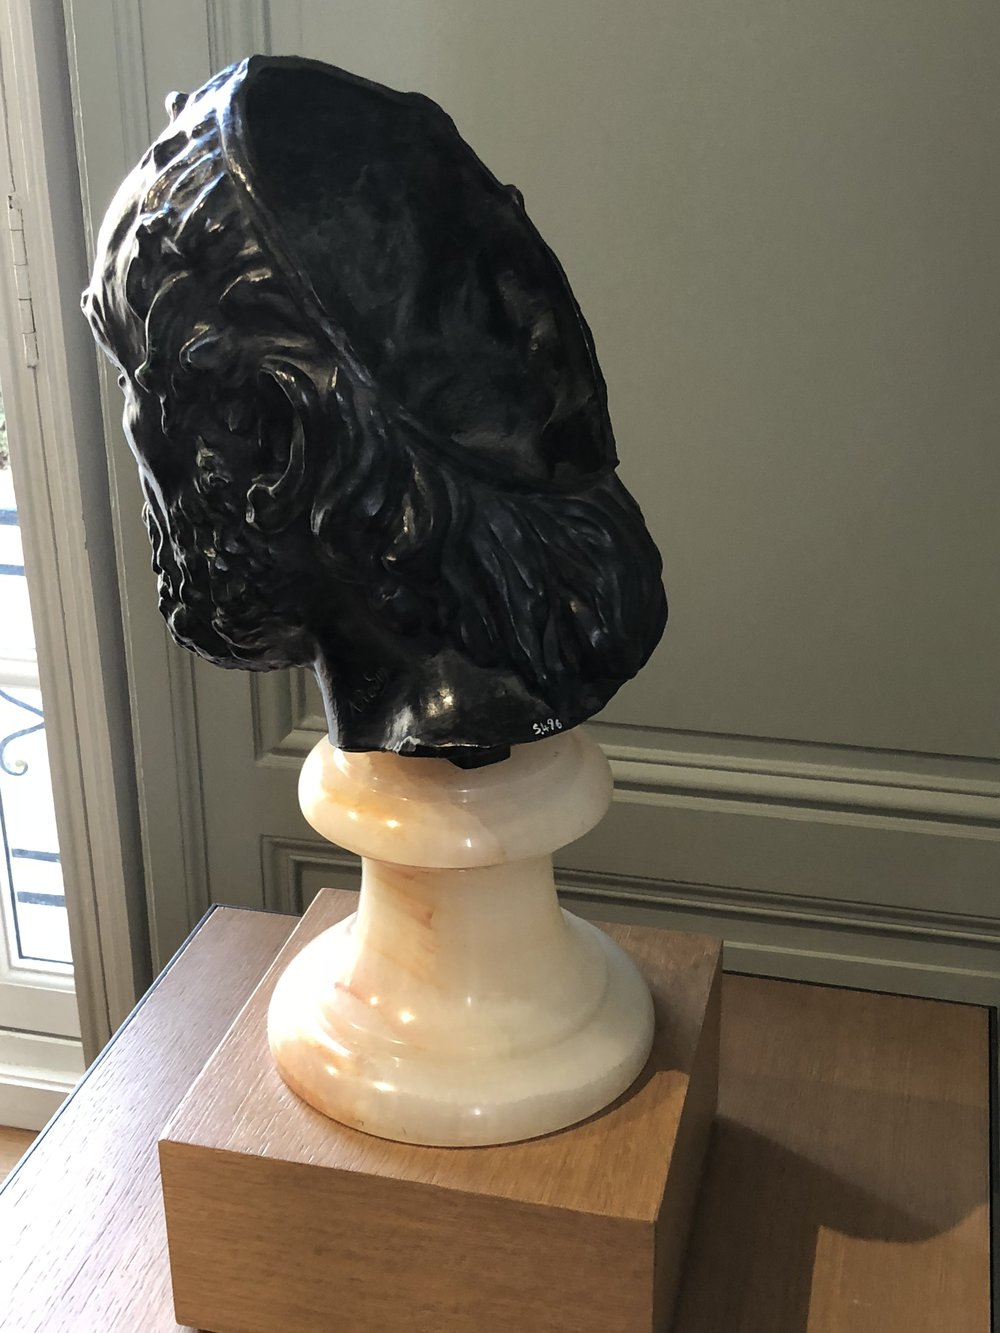 L'Homme au Nez Cassé (1865). Rodin Museum. Shown from Behind to Highlight the Missing Portion.